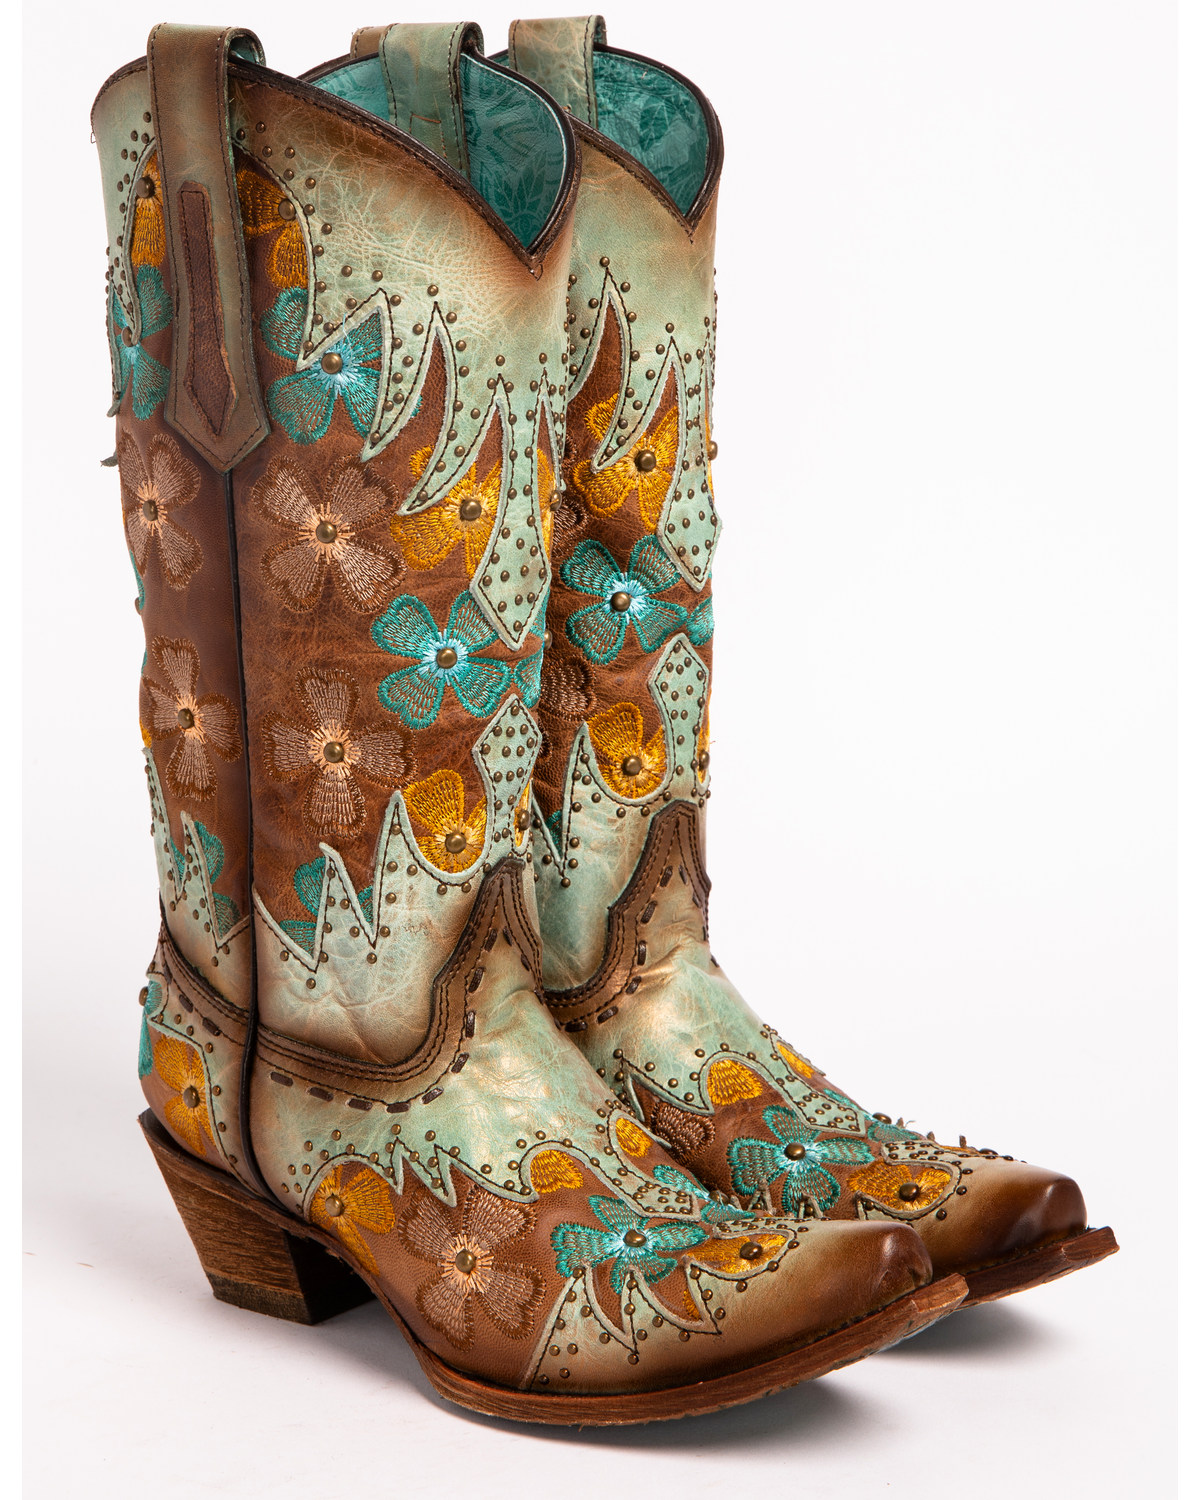 Corral womens mintmaple inlay studded floral embroidered cowgirl corral womens mintmaple inlay studded floral embroidered cowgirl boots snip toe turquoise reviewsmspy